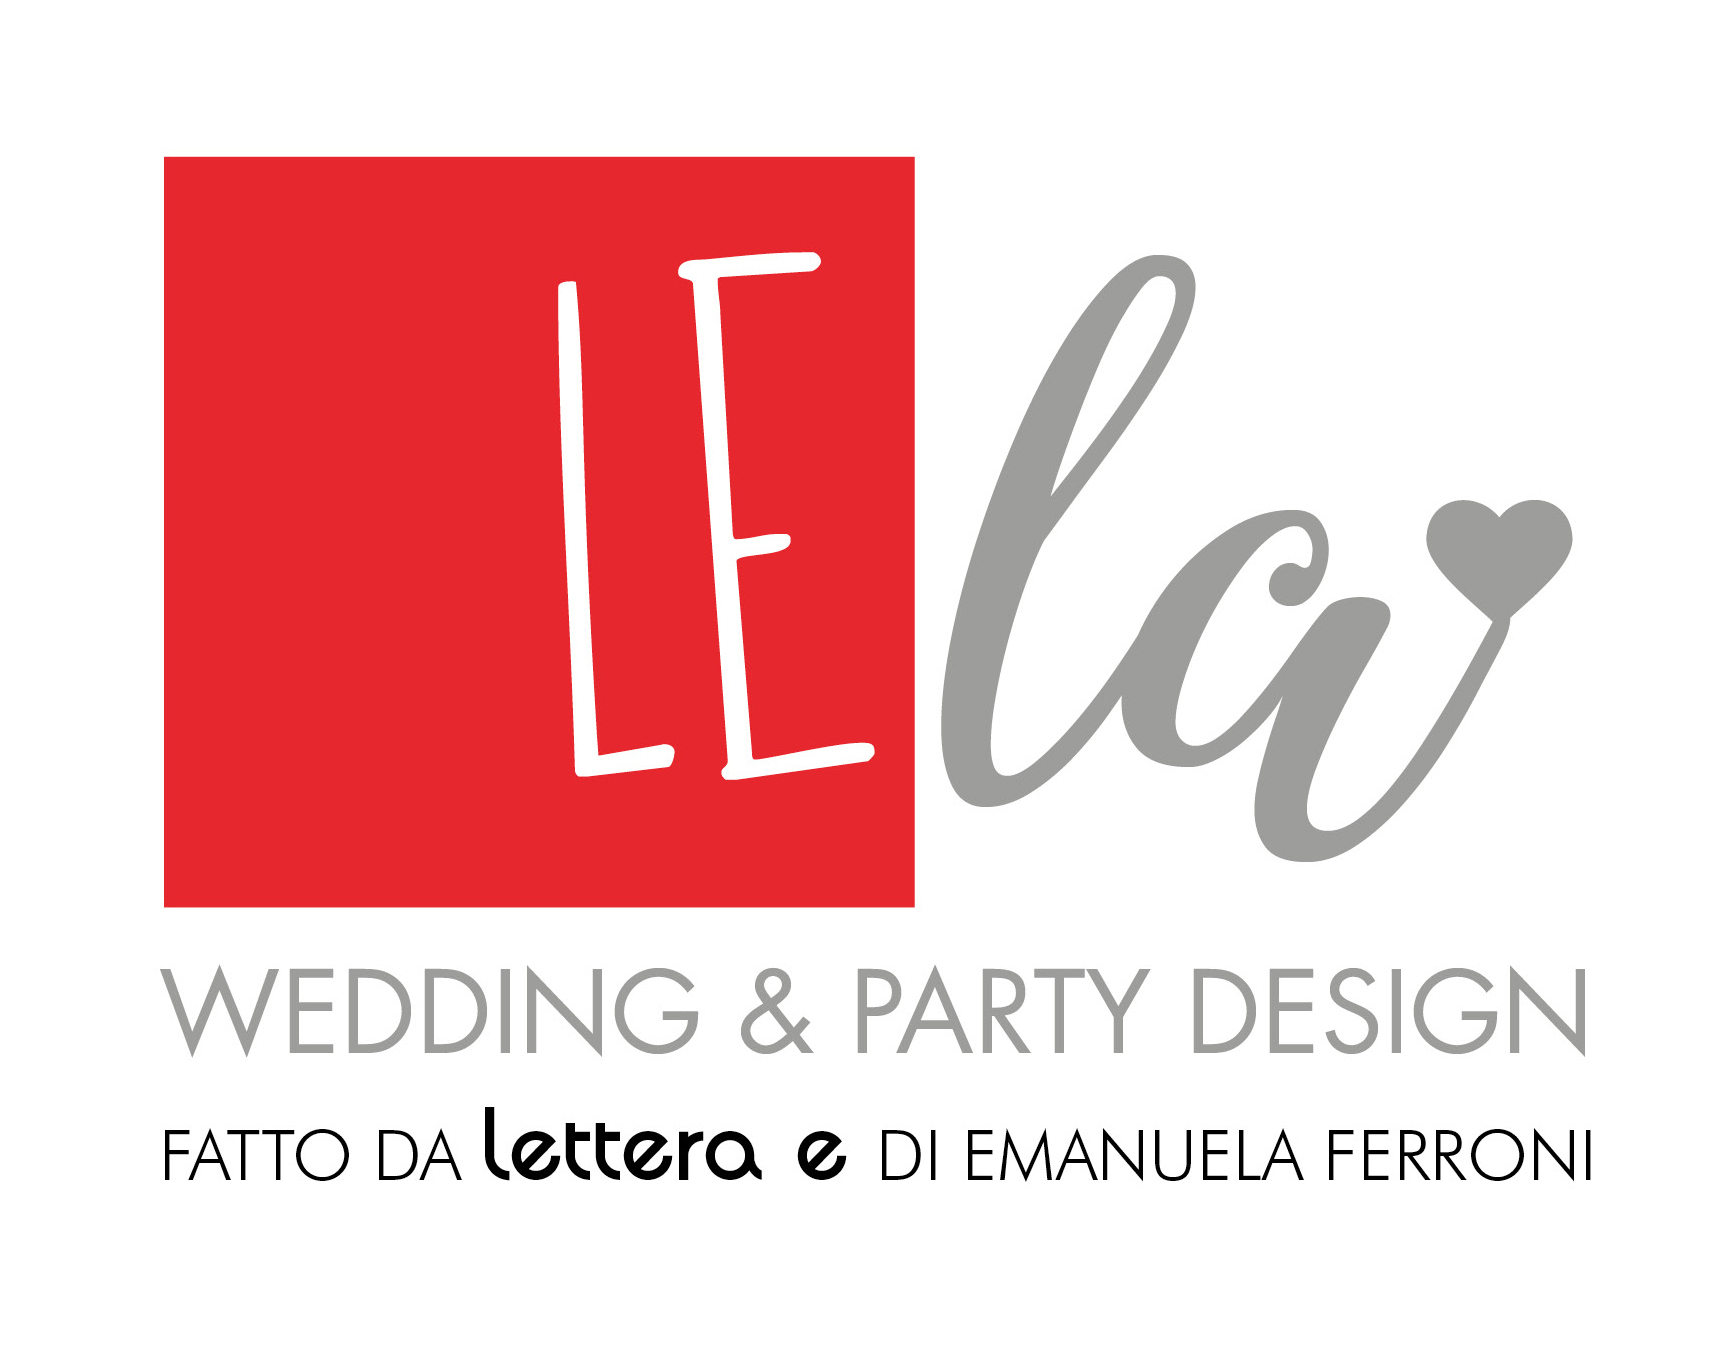 LEla wedding & party design